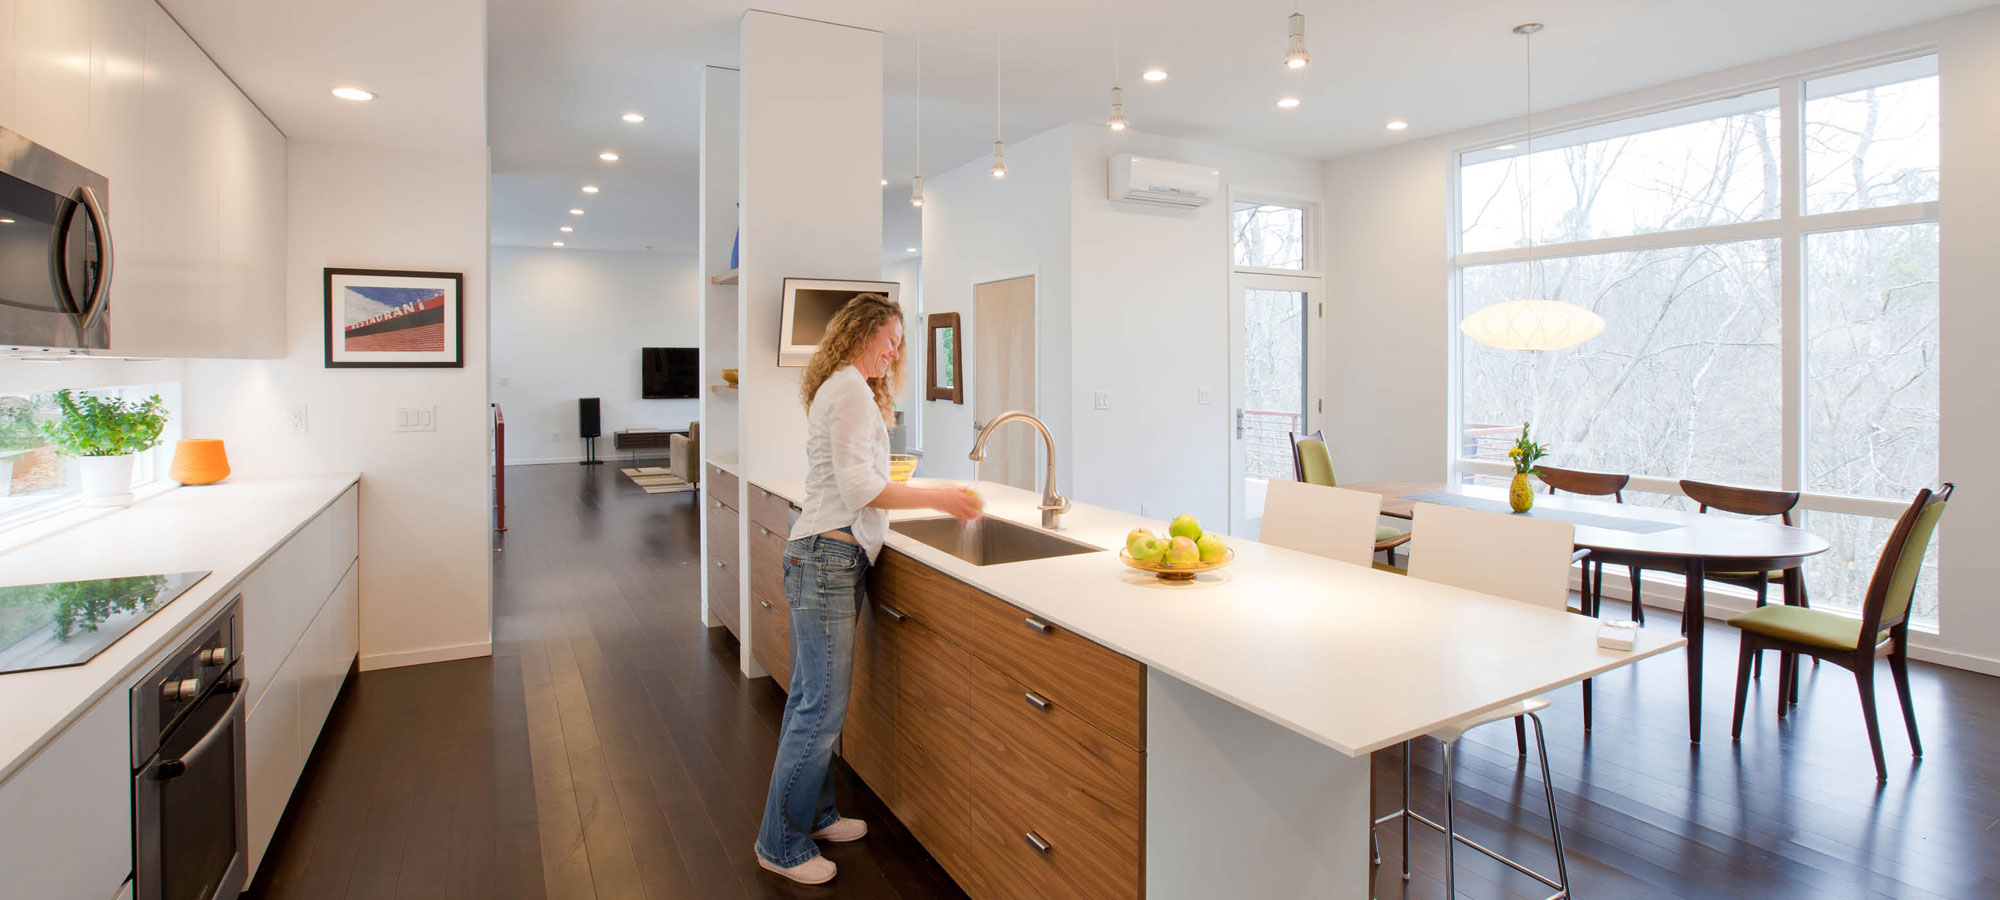 Mitsubishi ductless heating and cooling